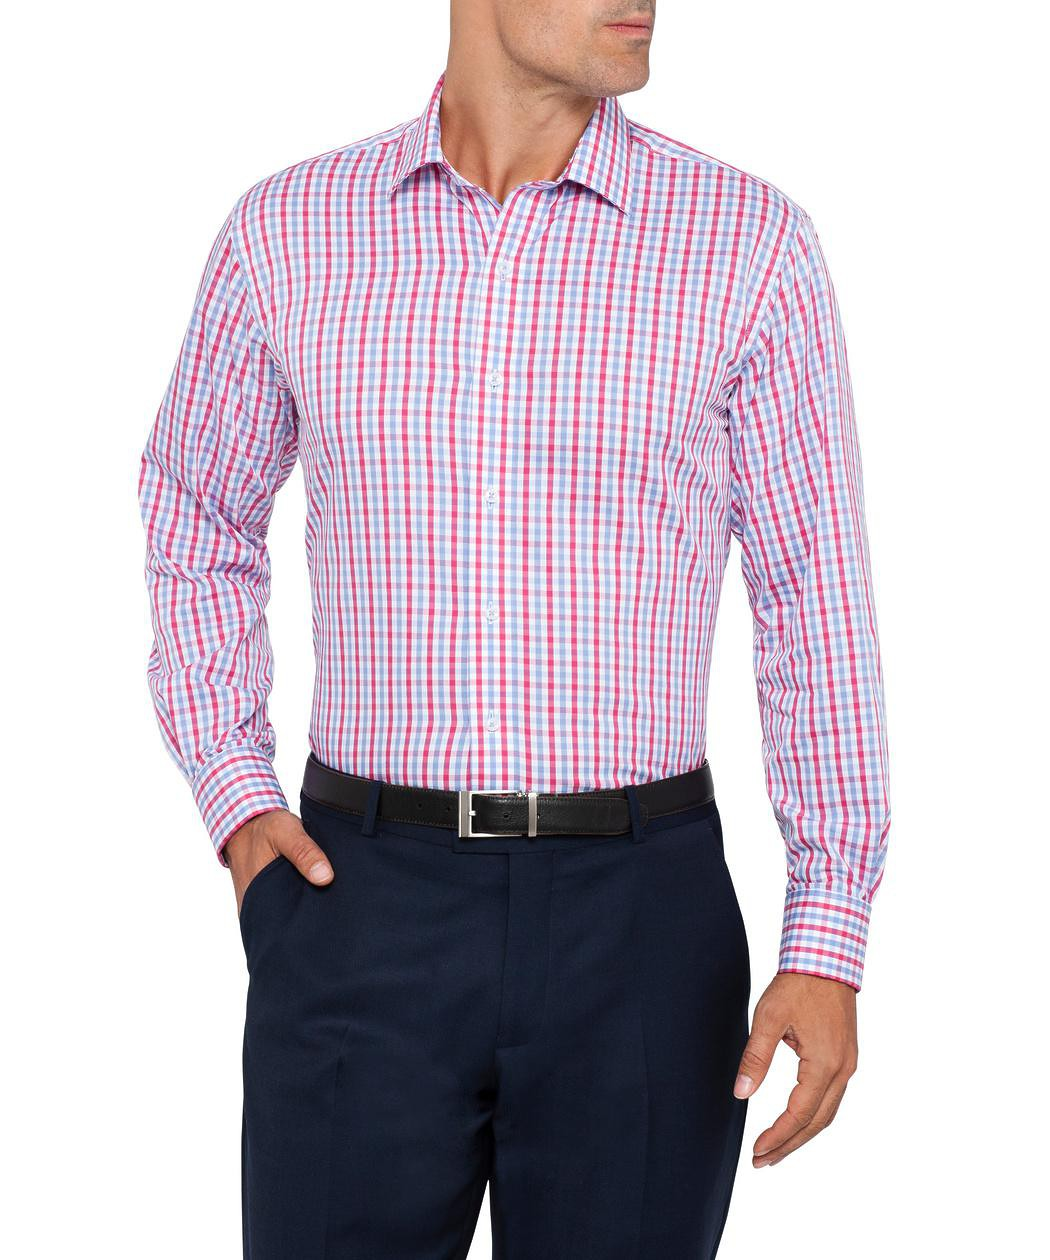 Van Heusen Euro Fit Pink and Blue Check Shirt | Van Heusen Shirts ...